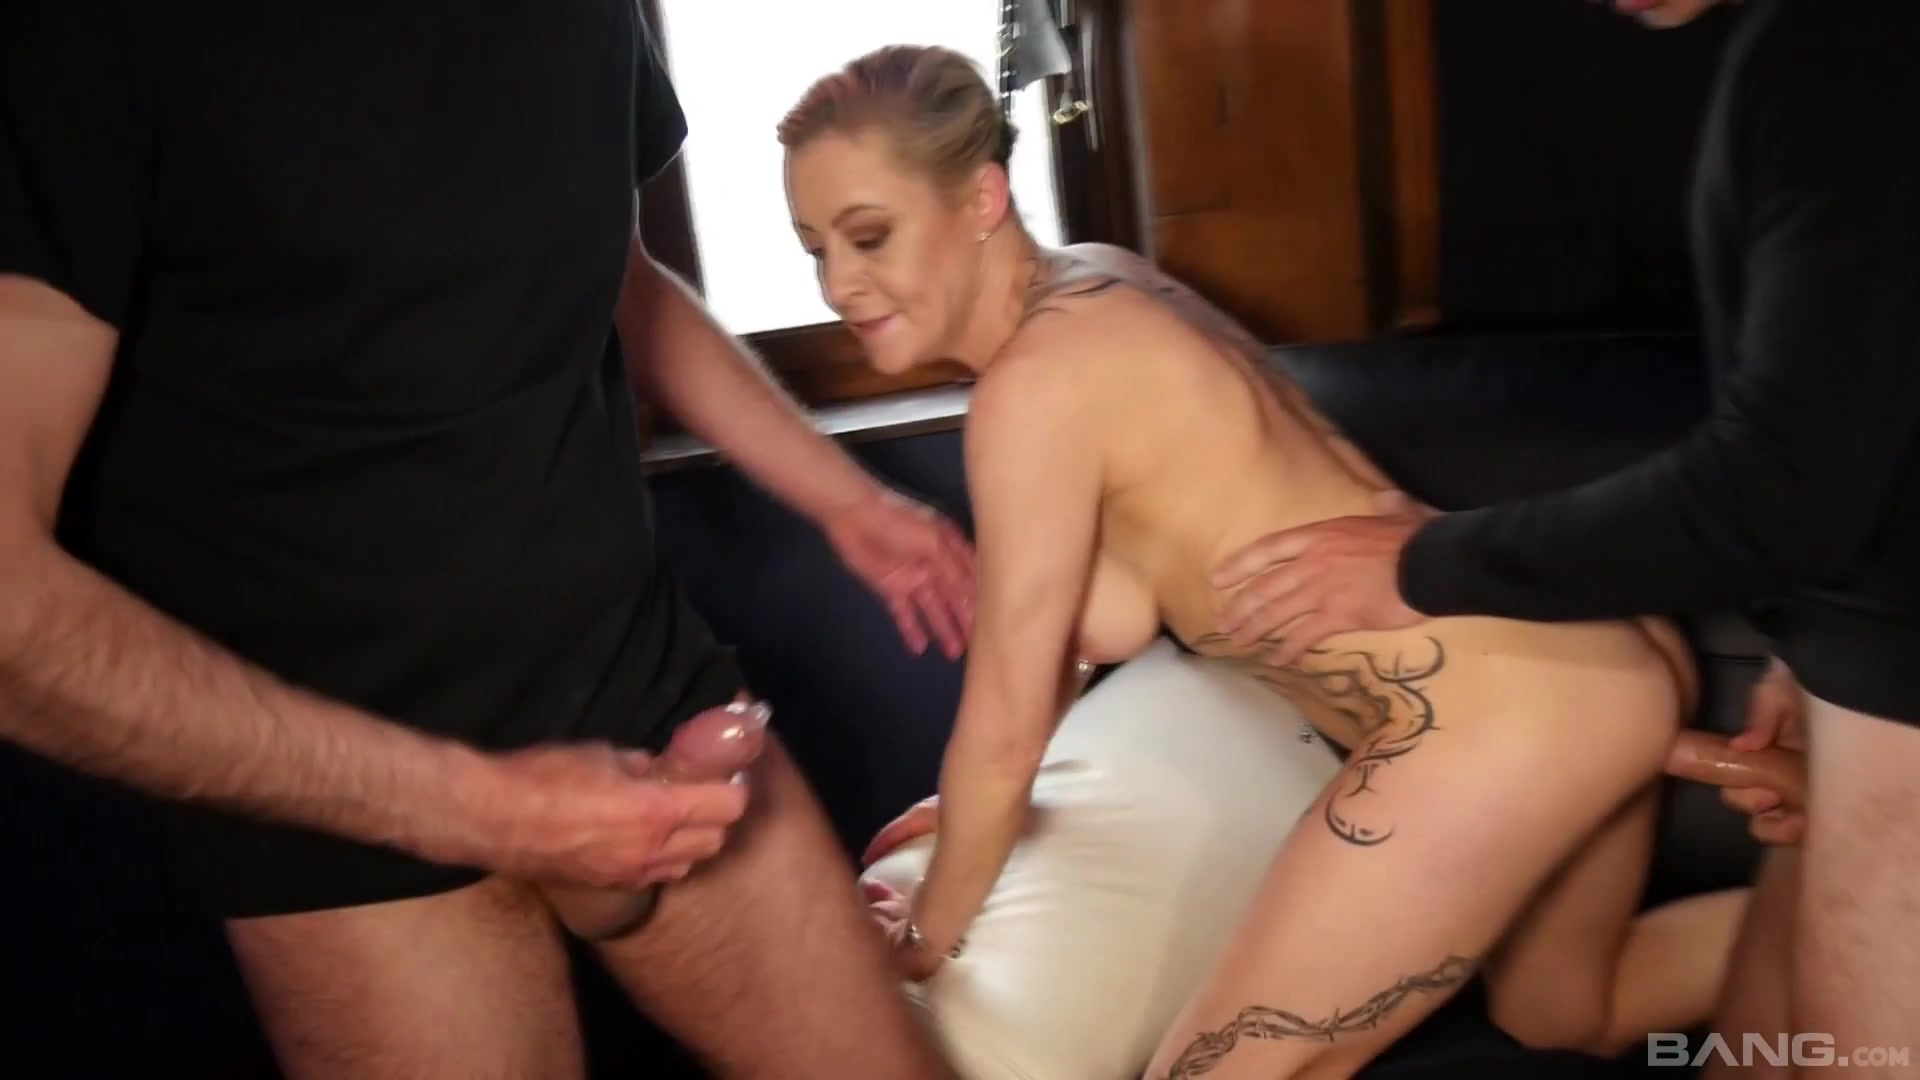 Amazing blonde milf gets in an amateur threesome